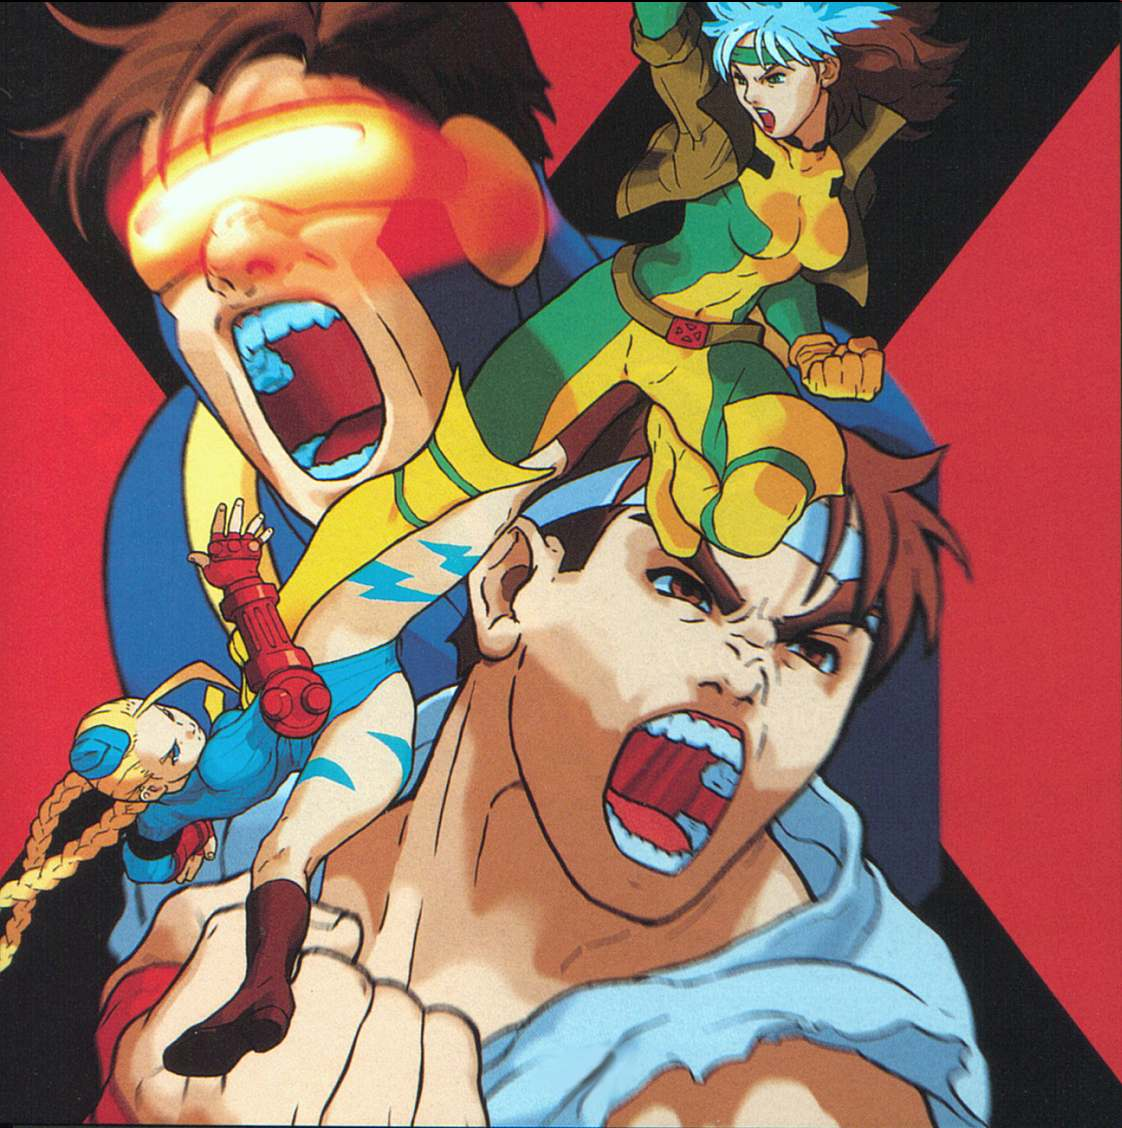 X-men vs street fighter 3